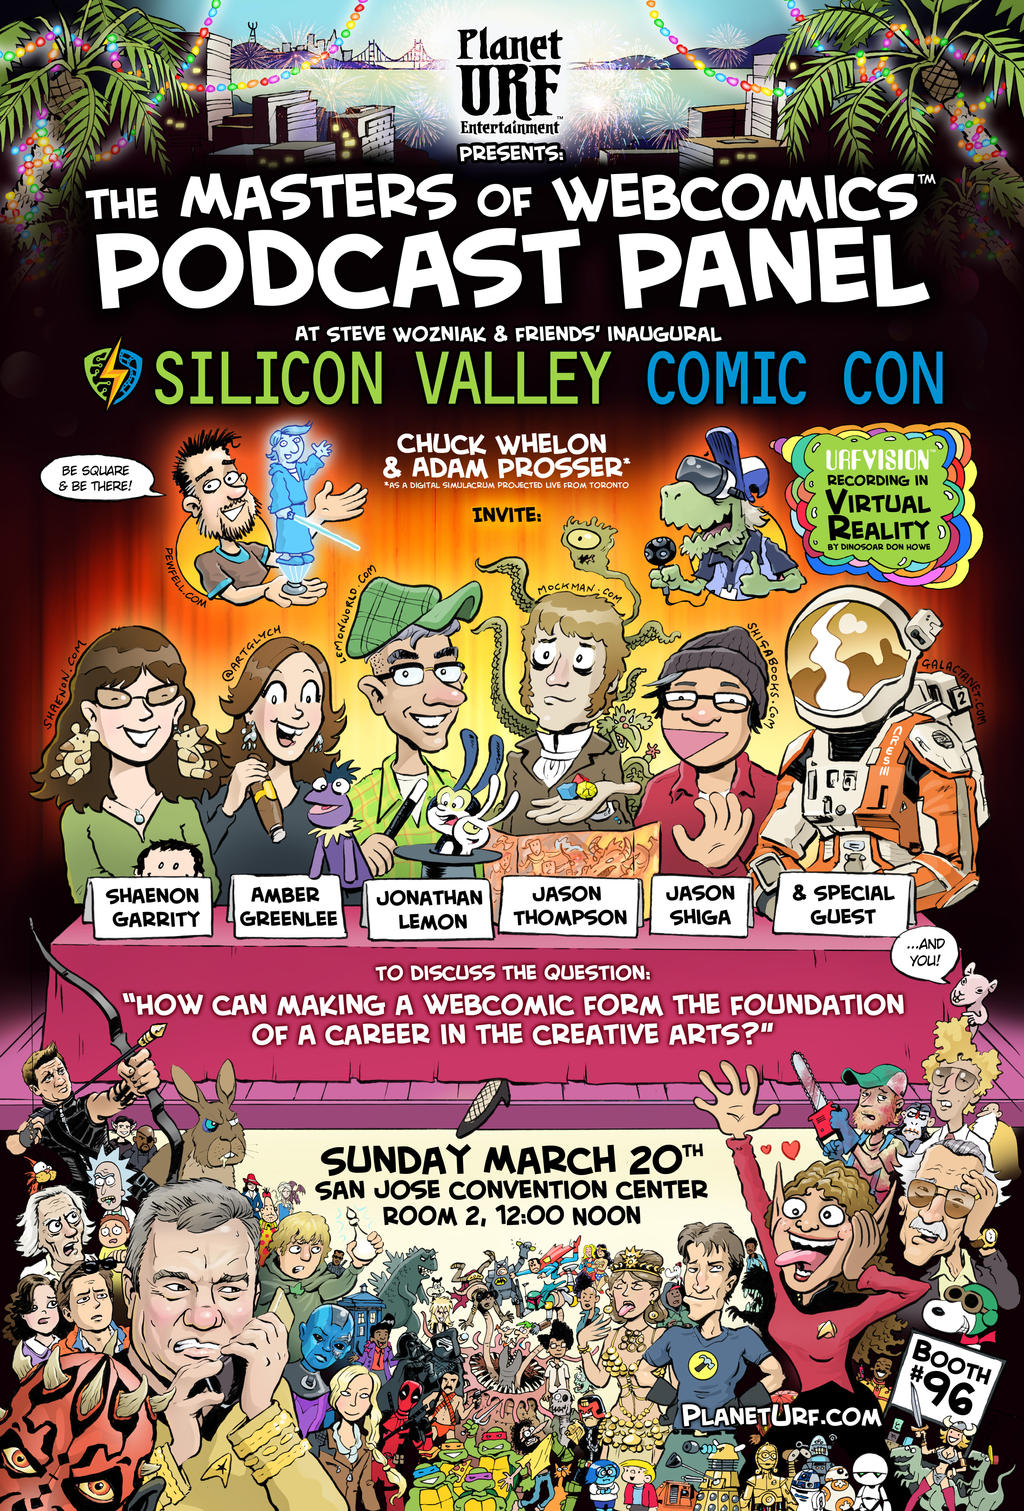 MastersofWebcomics SVCCPanel March2016 Flyer Color by chuckwheel